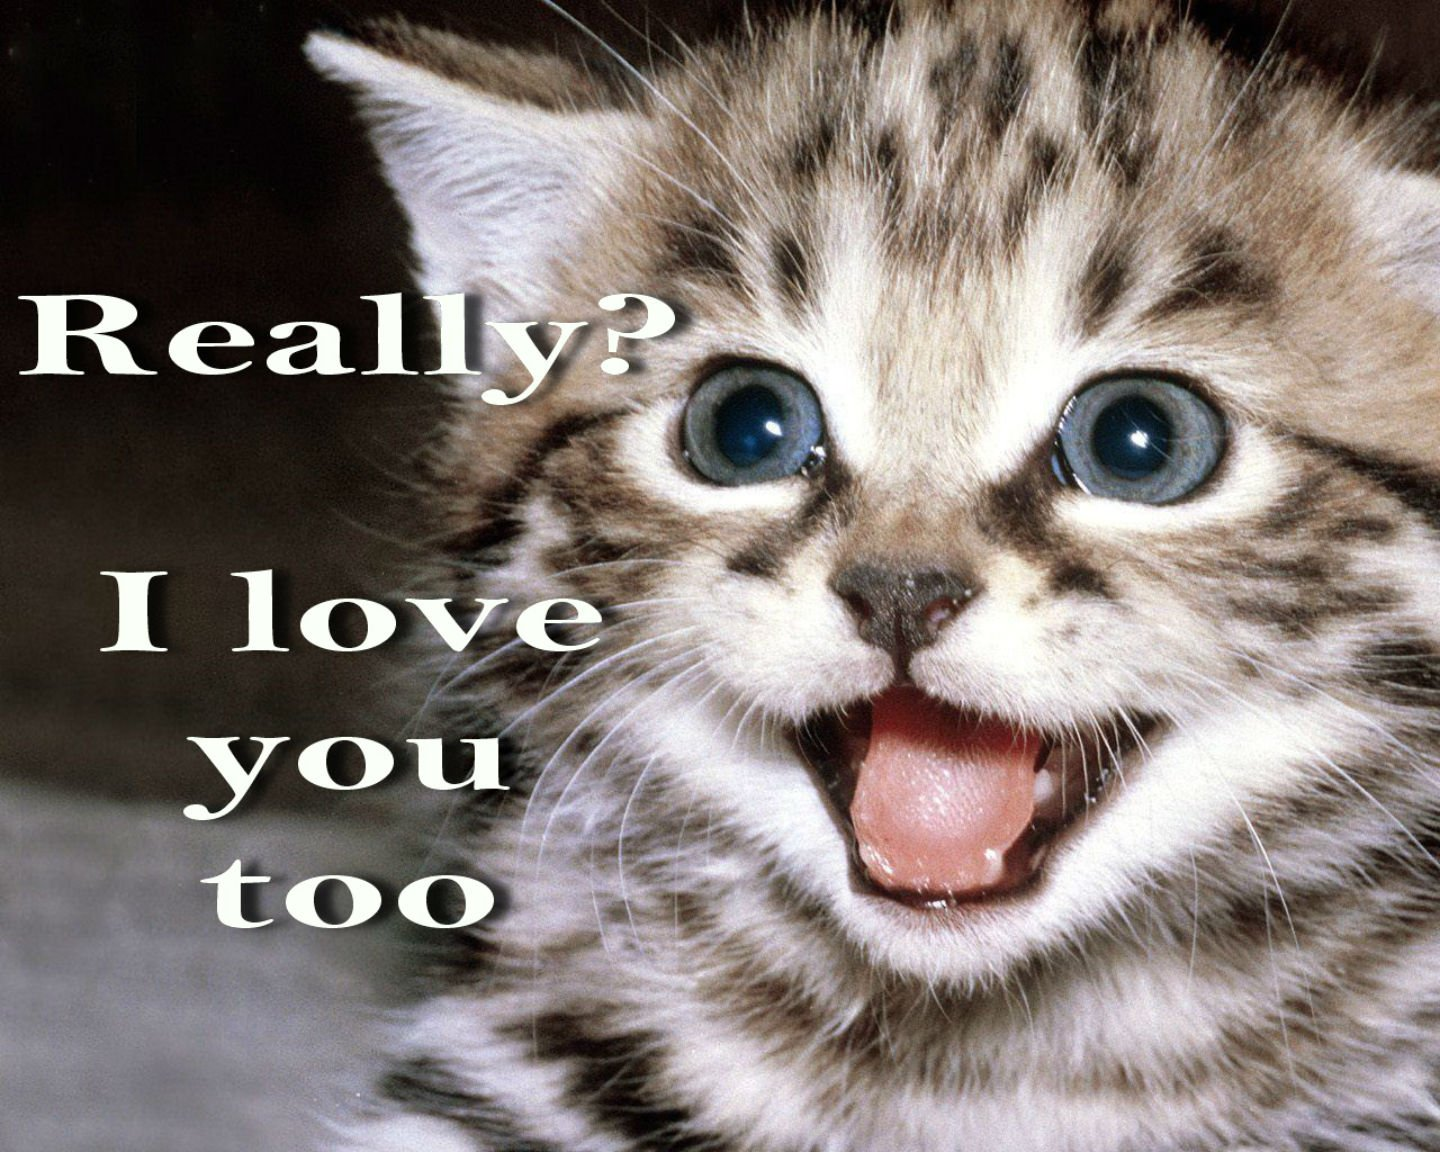 cat meme quote funny humor grumpy kitten mood love wallpaper 1440x1152